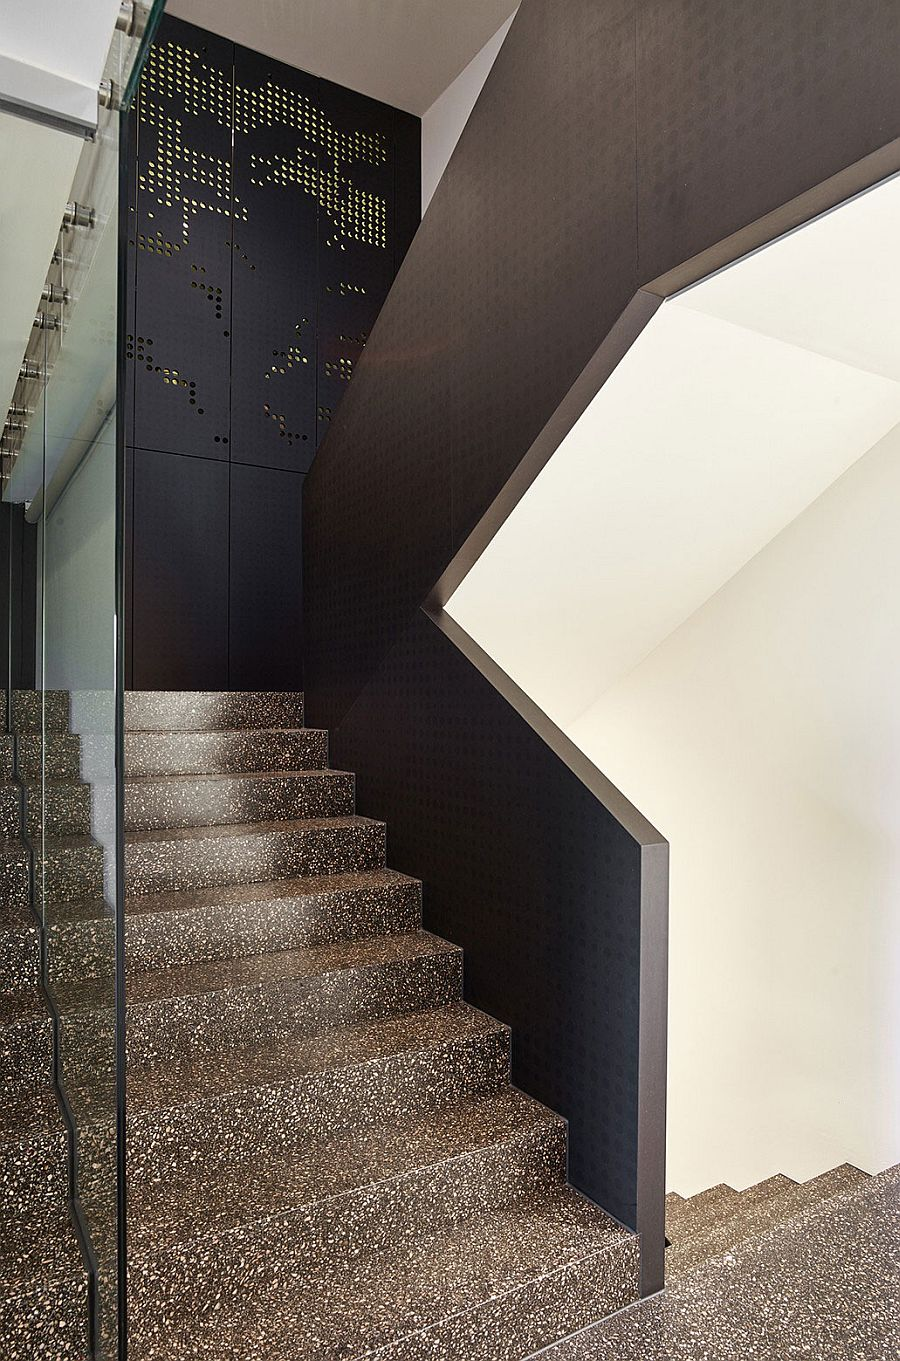 Cool metallic shading system adds aesthetic value to the interior as well